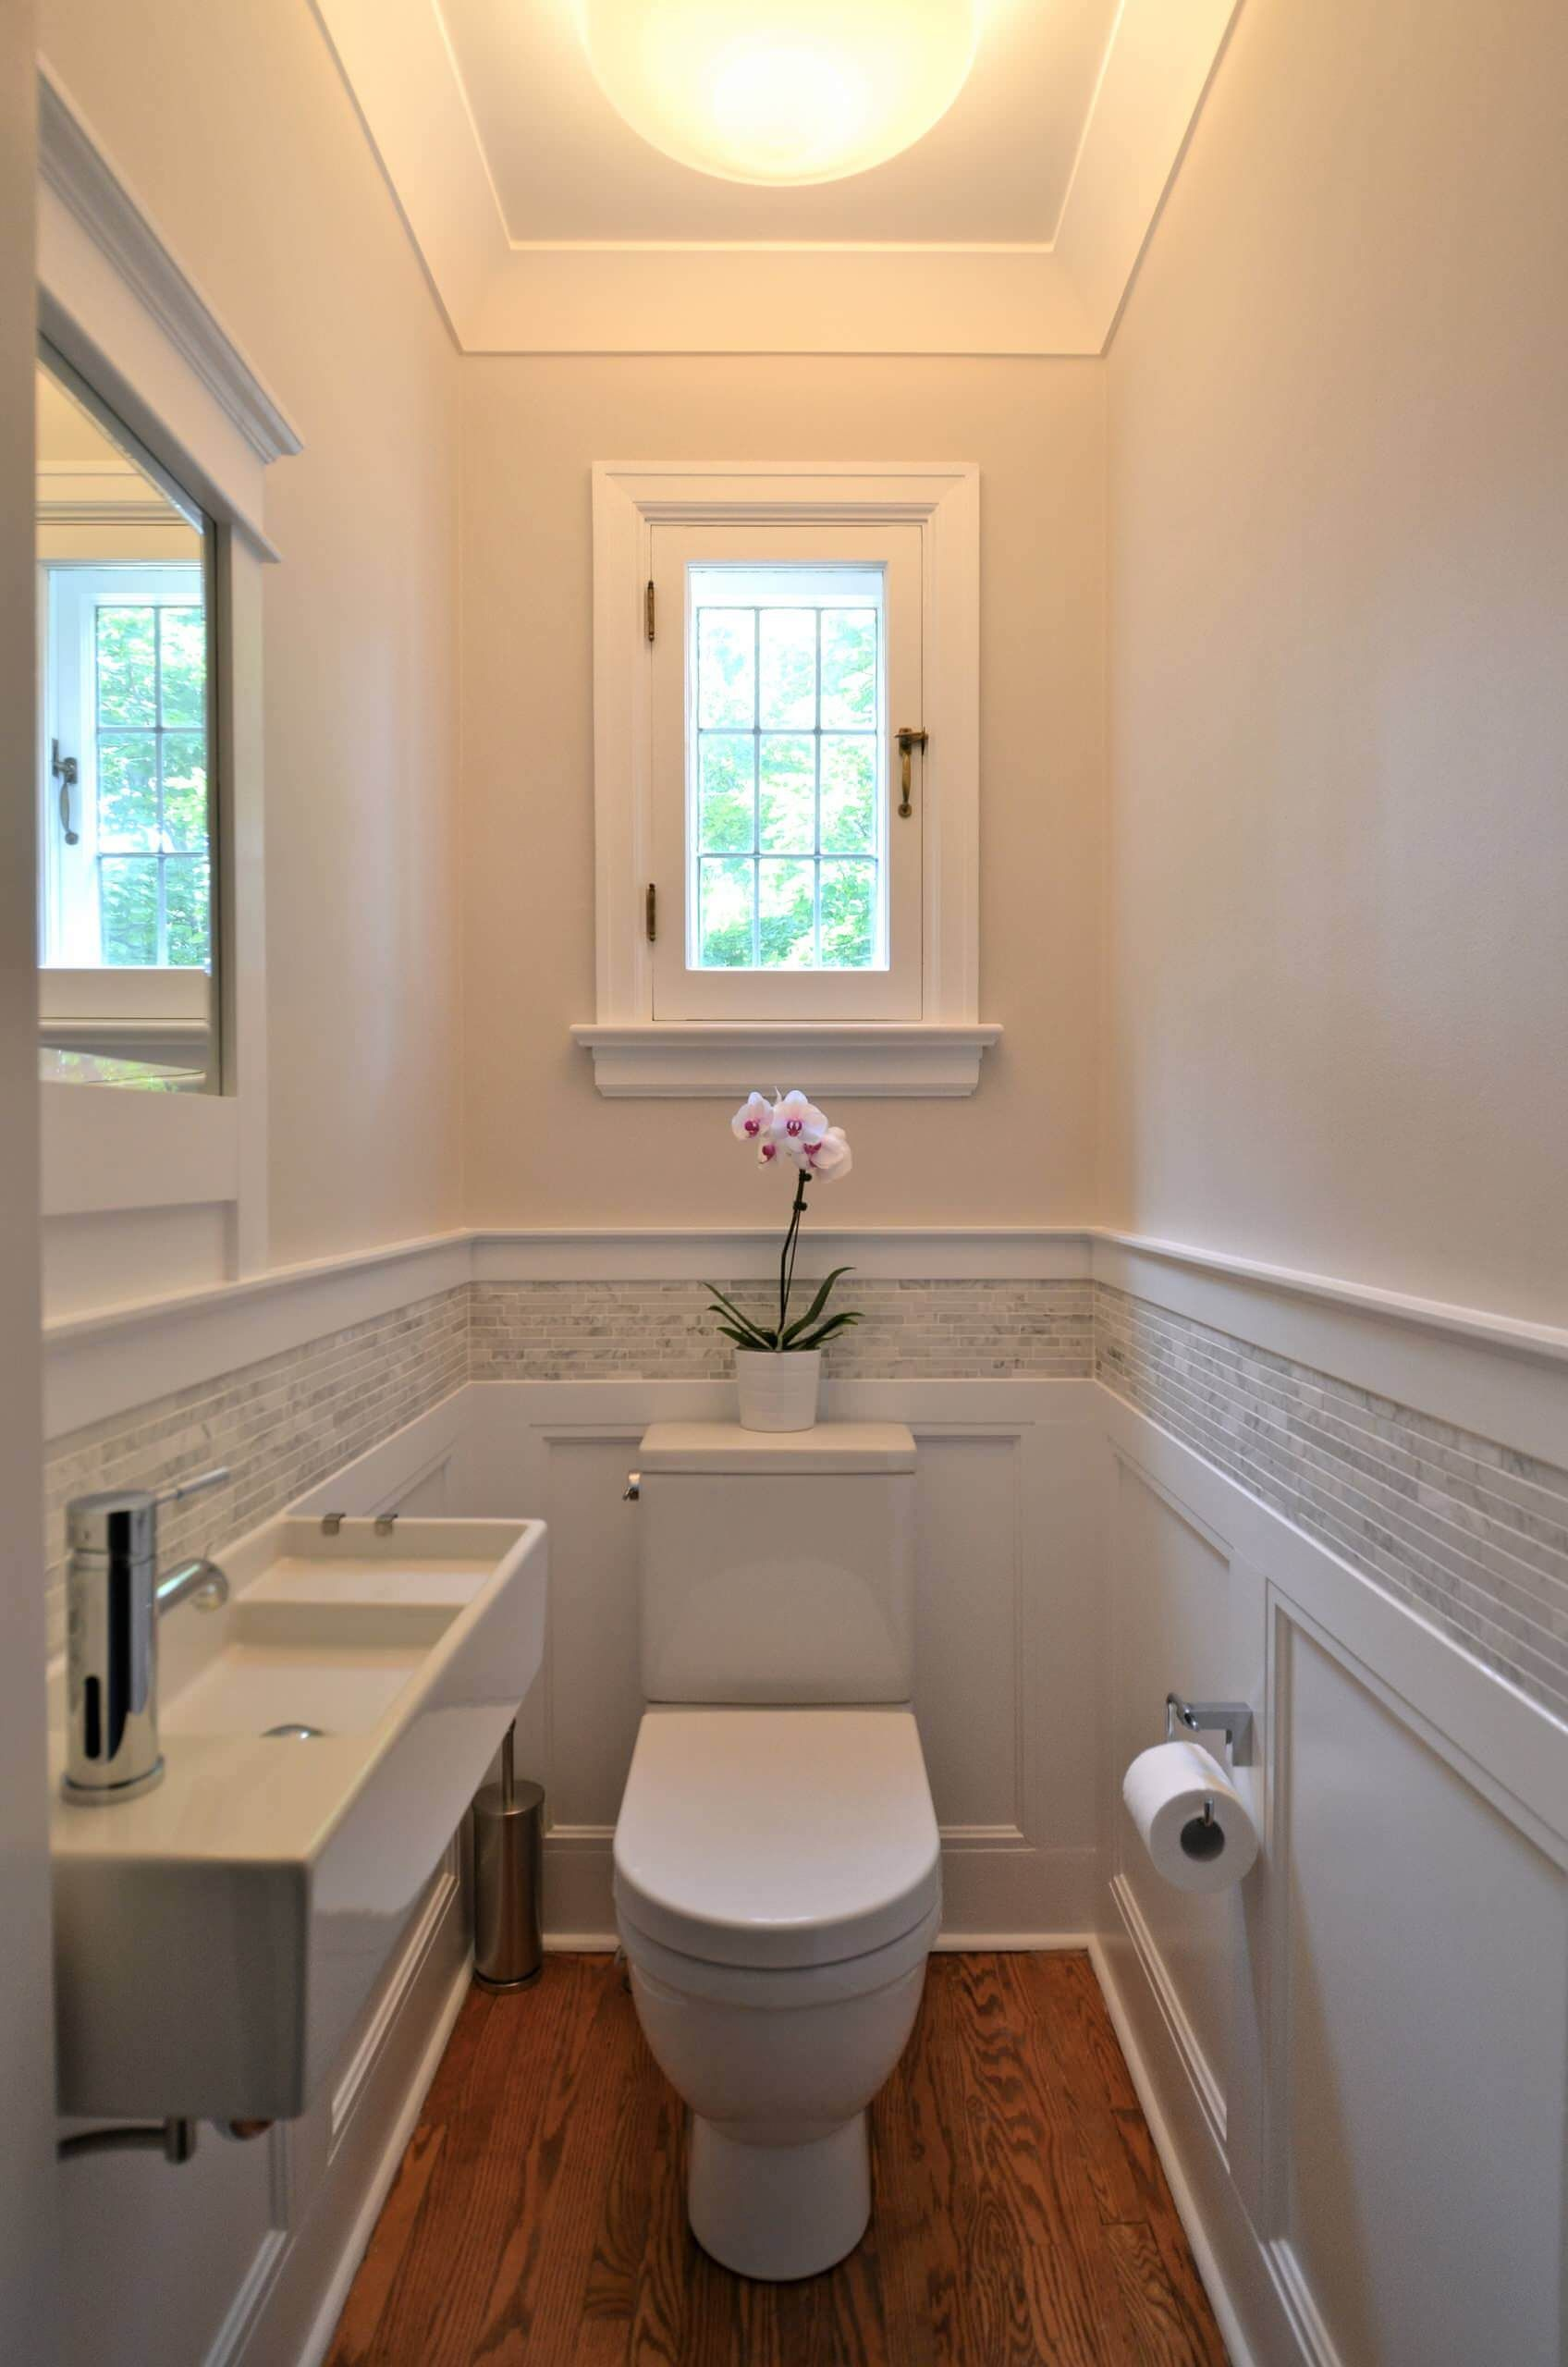 Awesome News Good Informations Starts From Awesome News Small Bathroom Remodel Small Bathroom Decor Small Bathroom